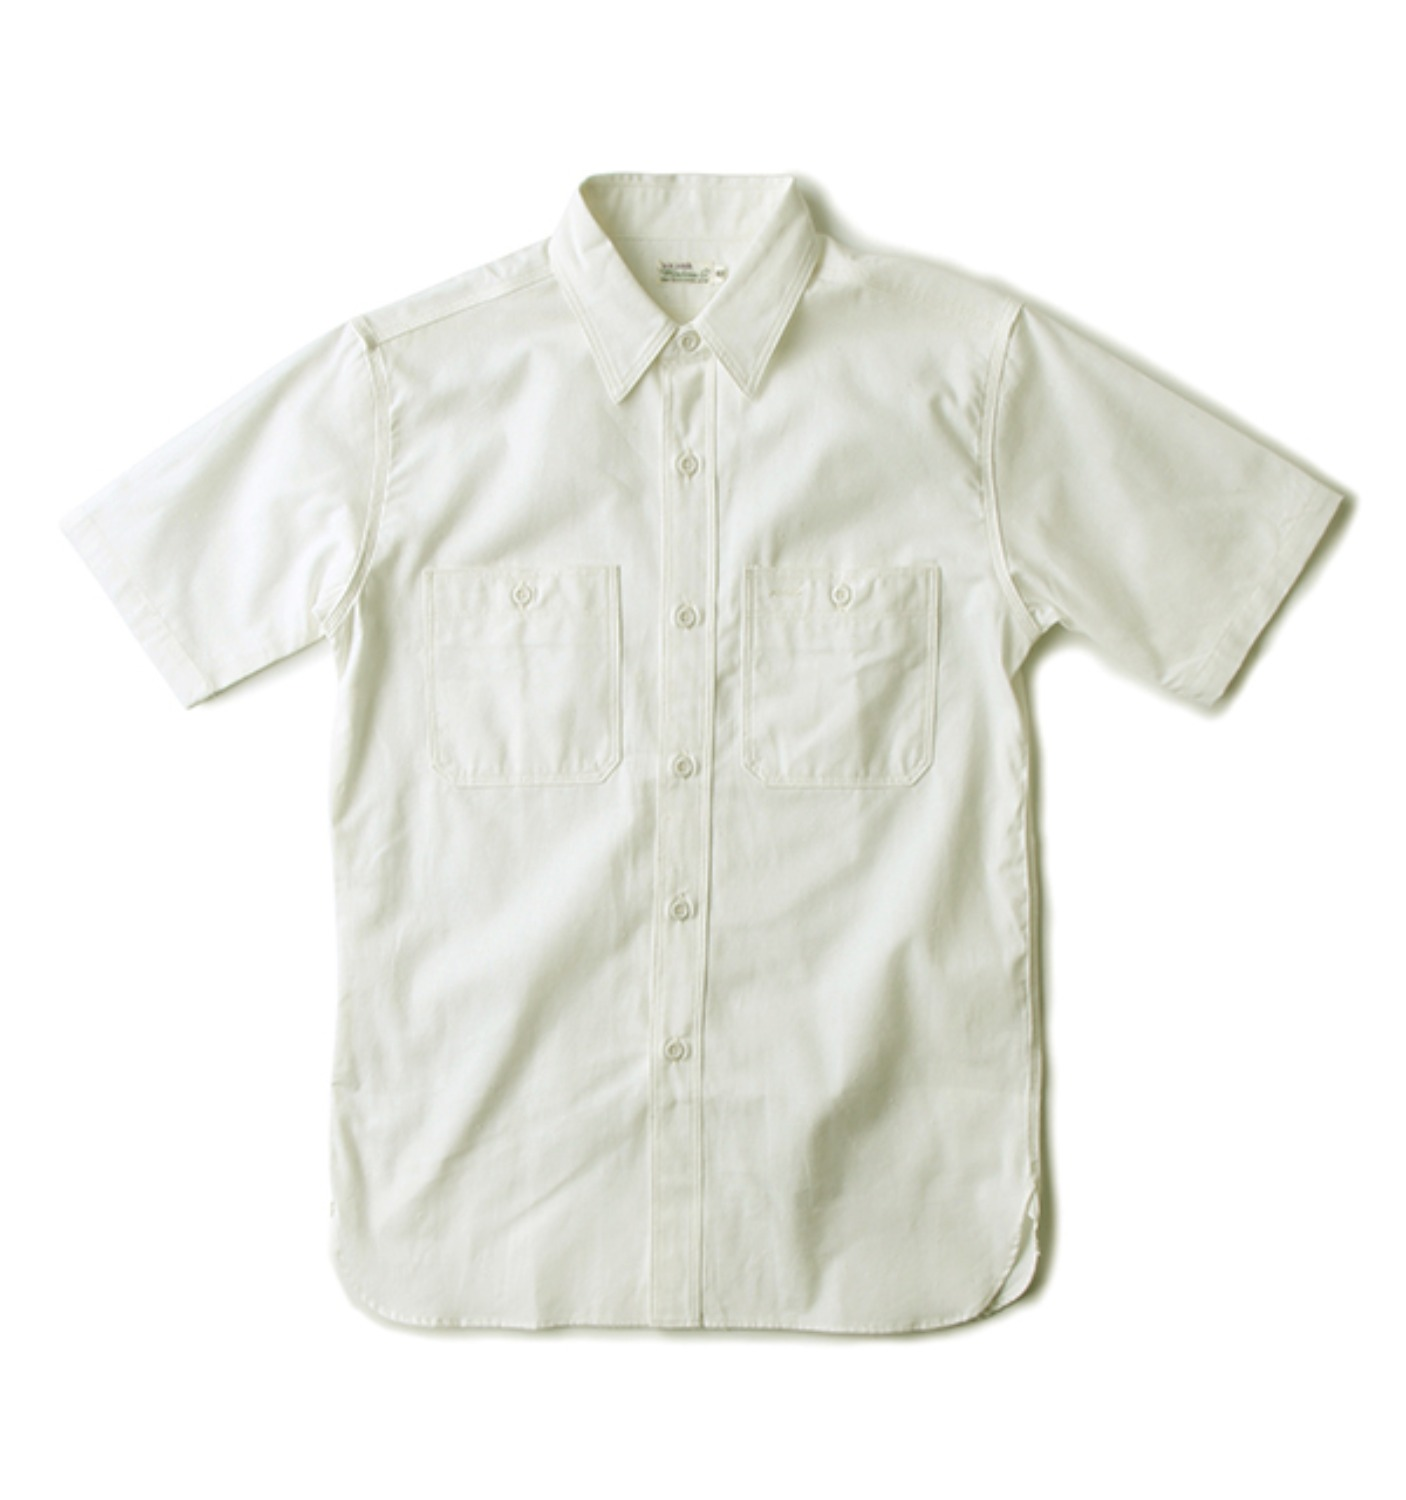 Lot 3076 Triple Stitch Work Shirt OFFWHITE